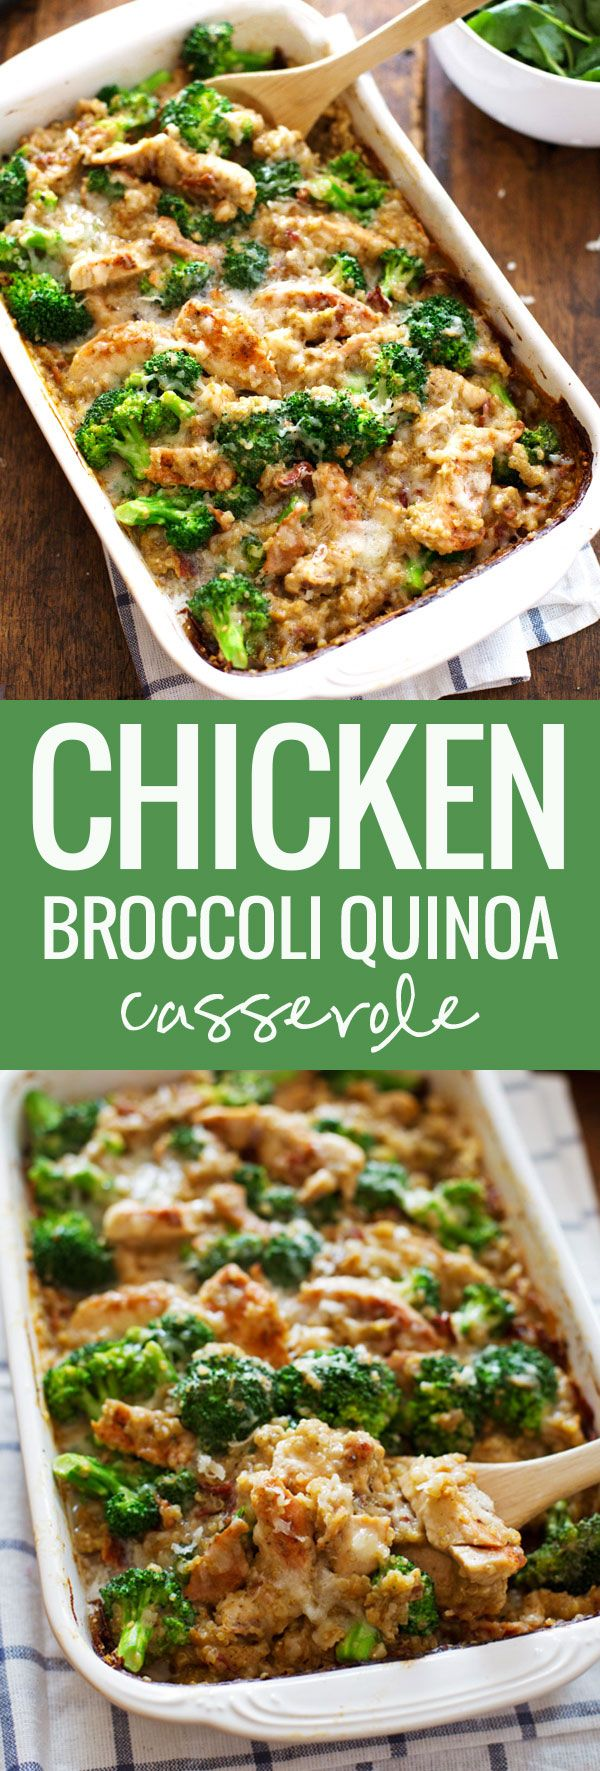 Creamy Chicken Quinoa and Broccoli Casserole - real food meets comfort food. From scratch, quick and easy. | pinchofyum.com